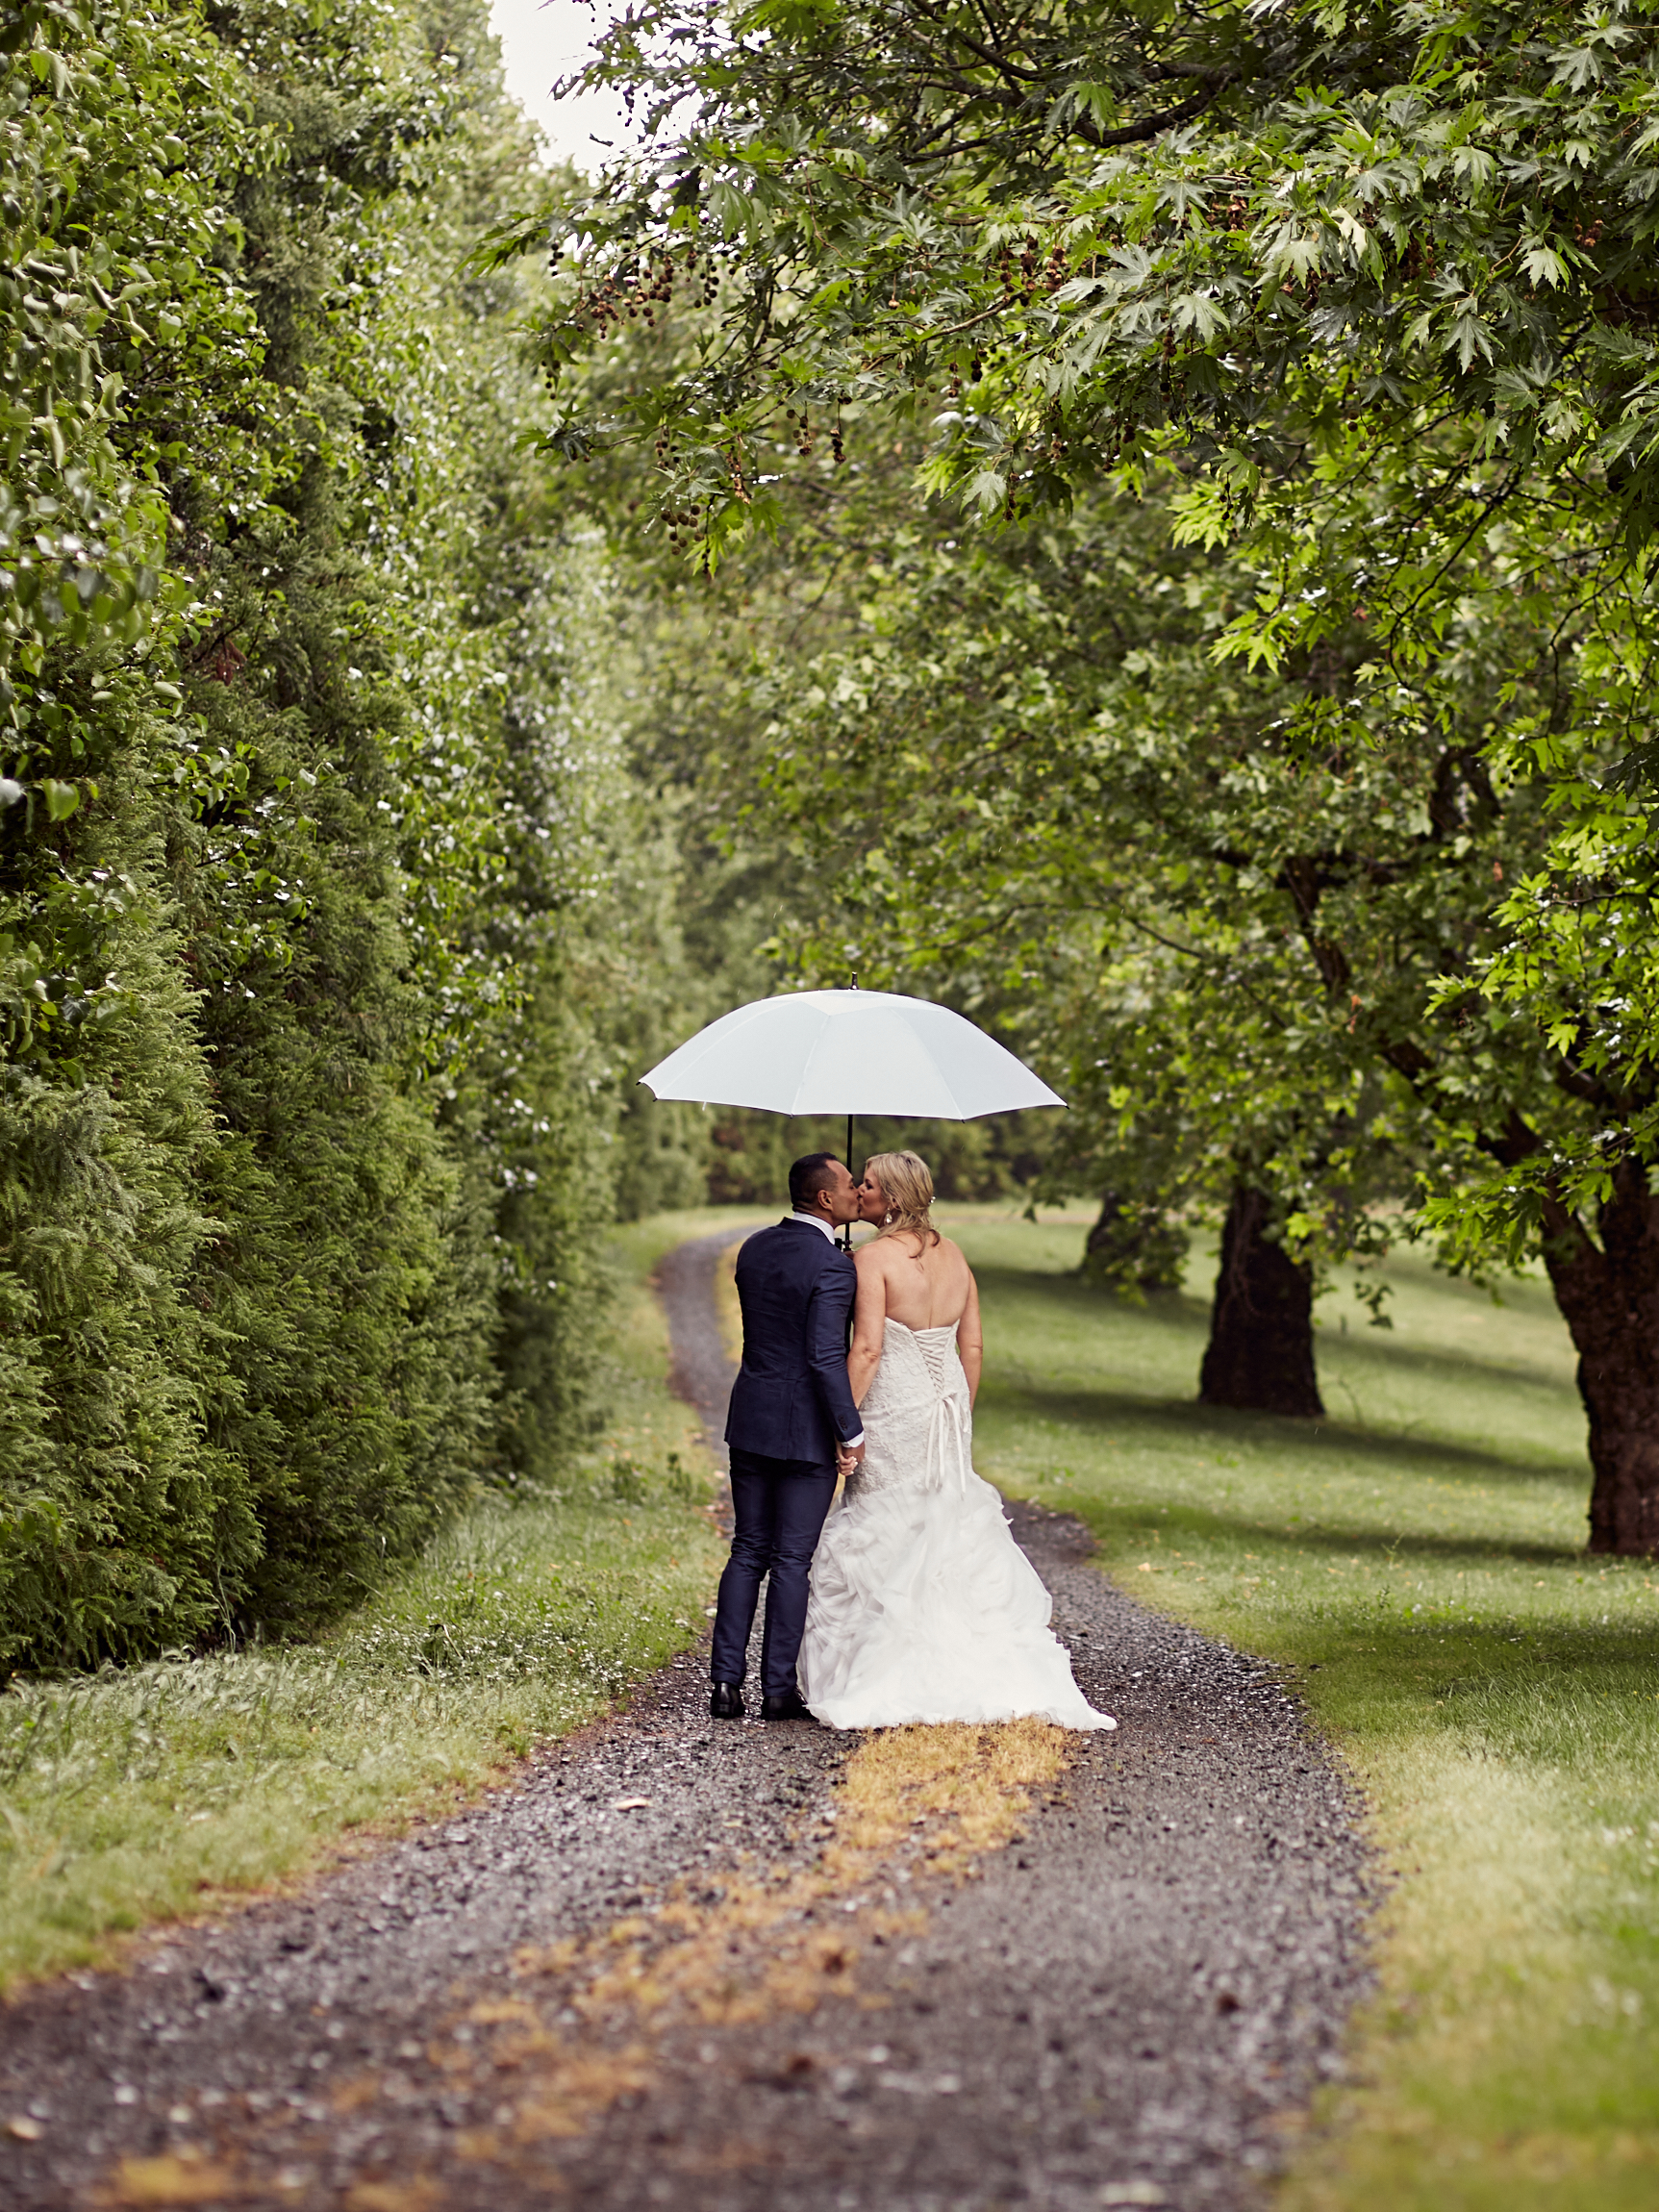 rainy Auckland wedding photography